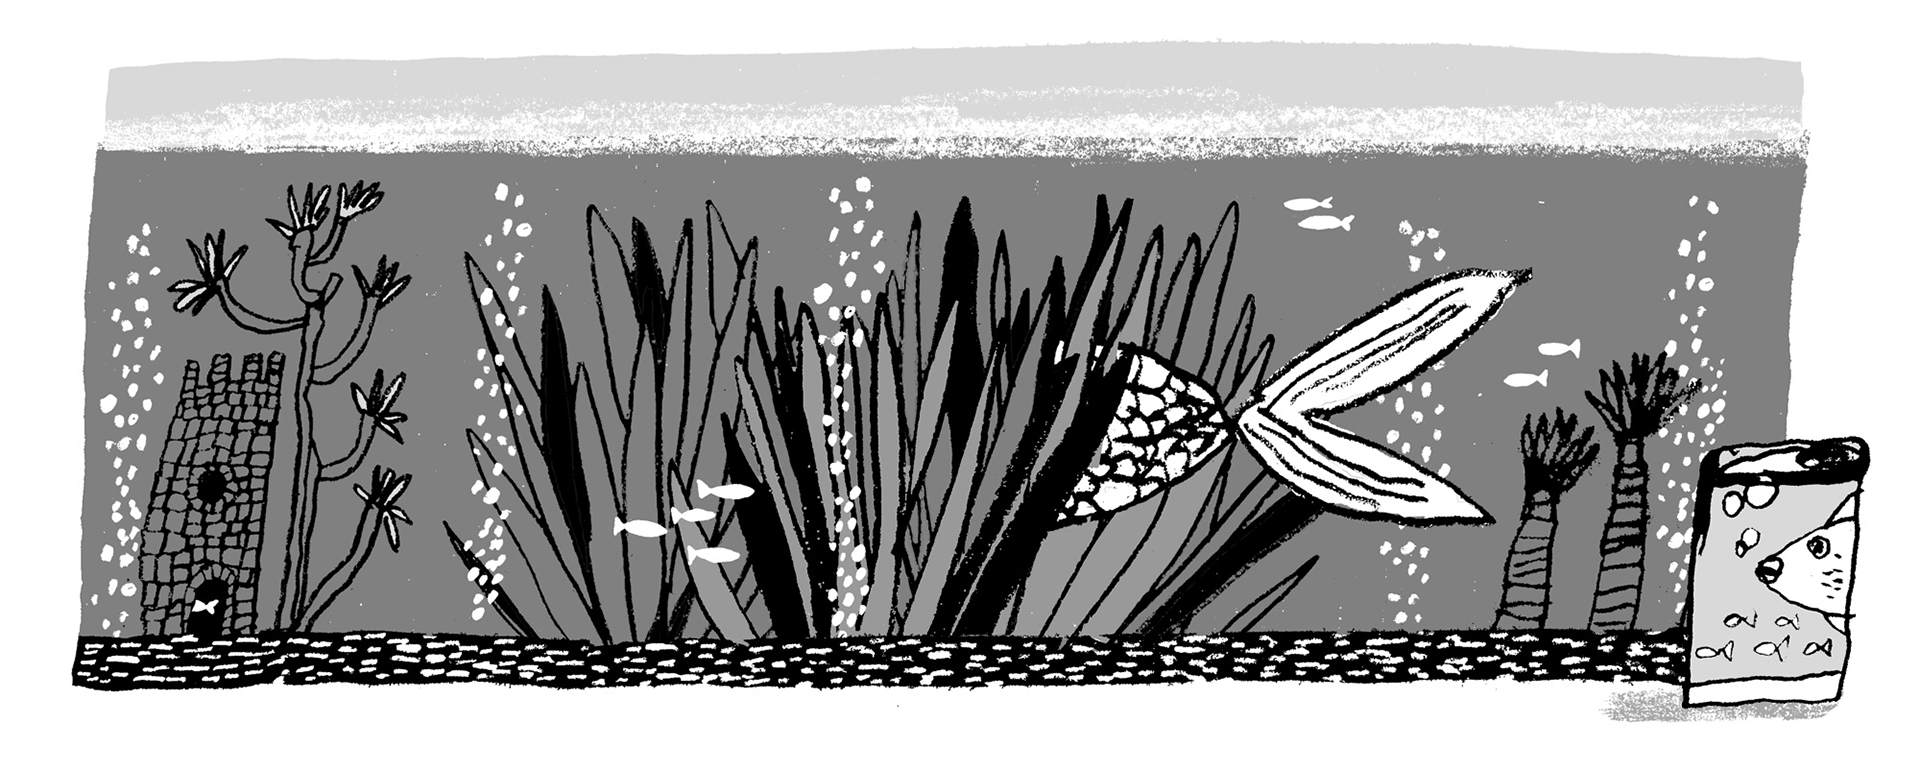 Illustration of a shy fish hiding in a large fish tank.